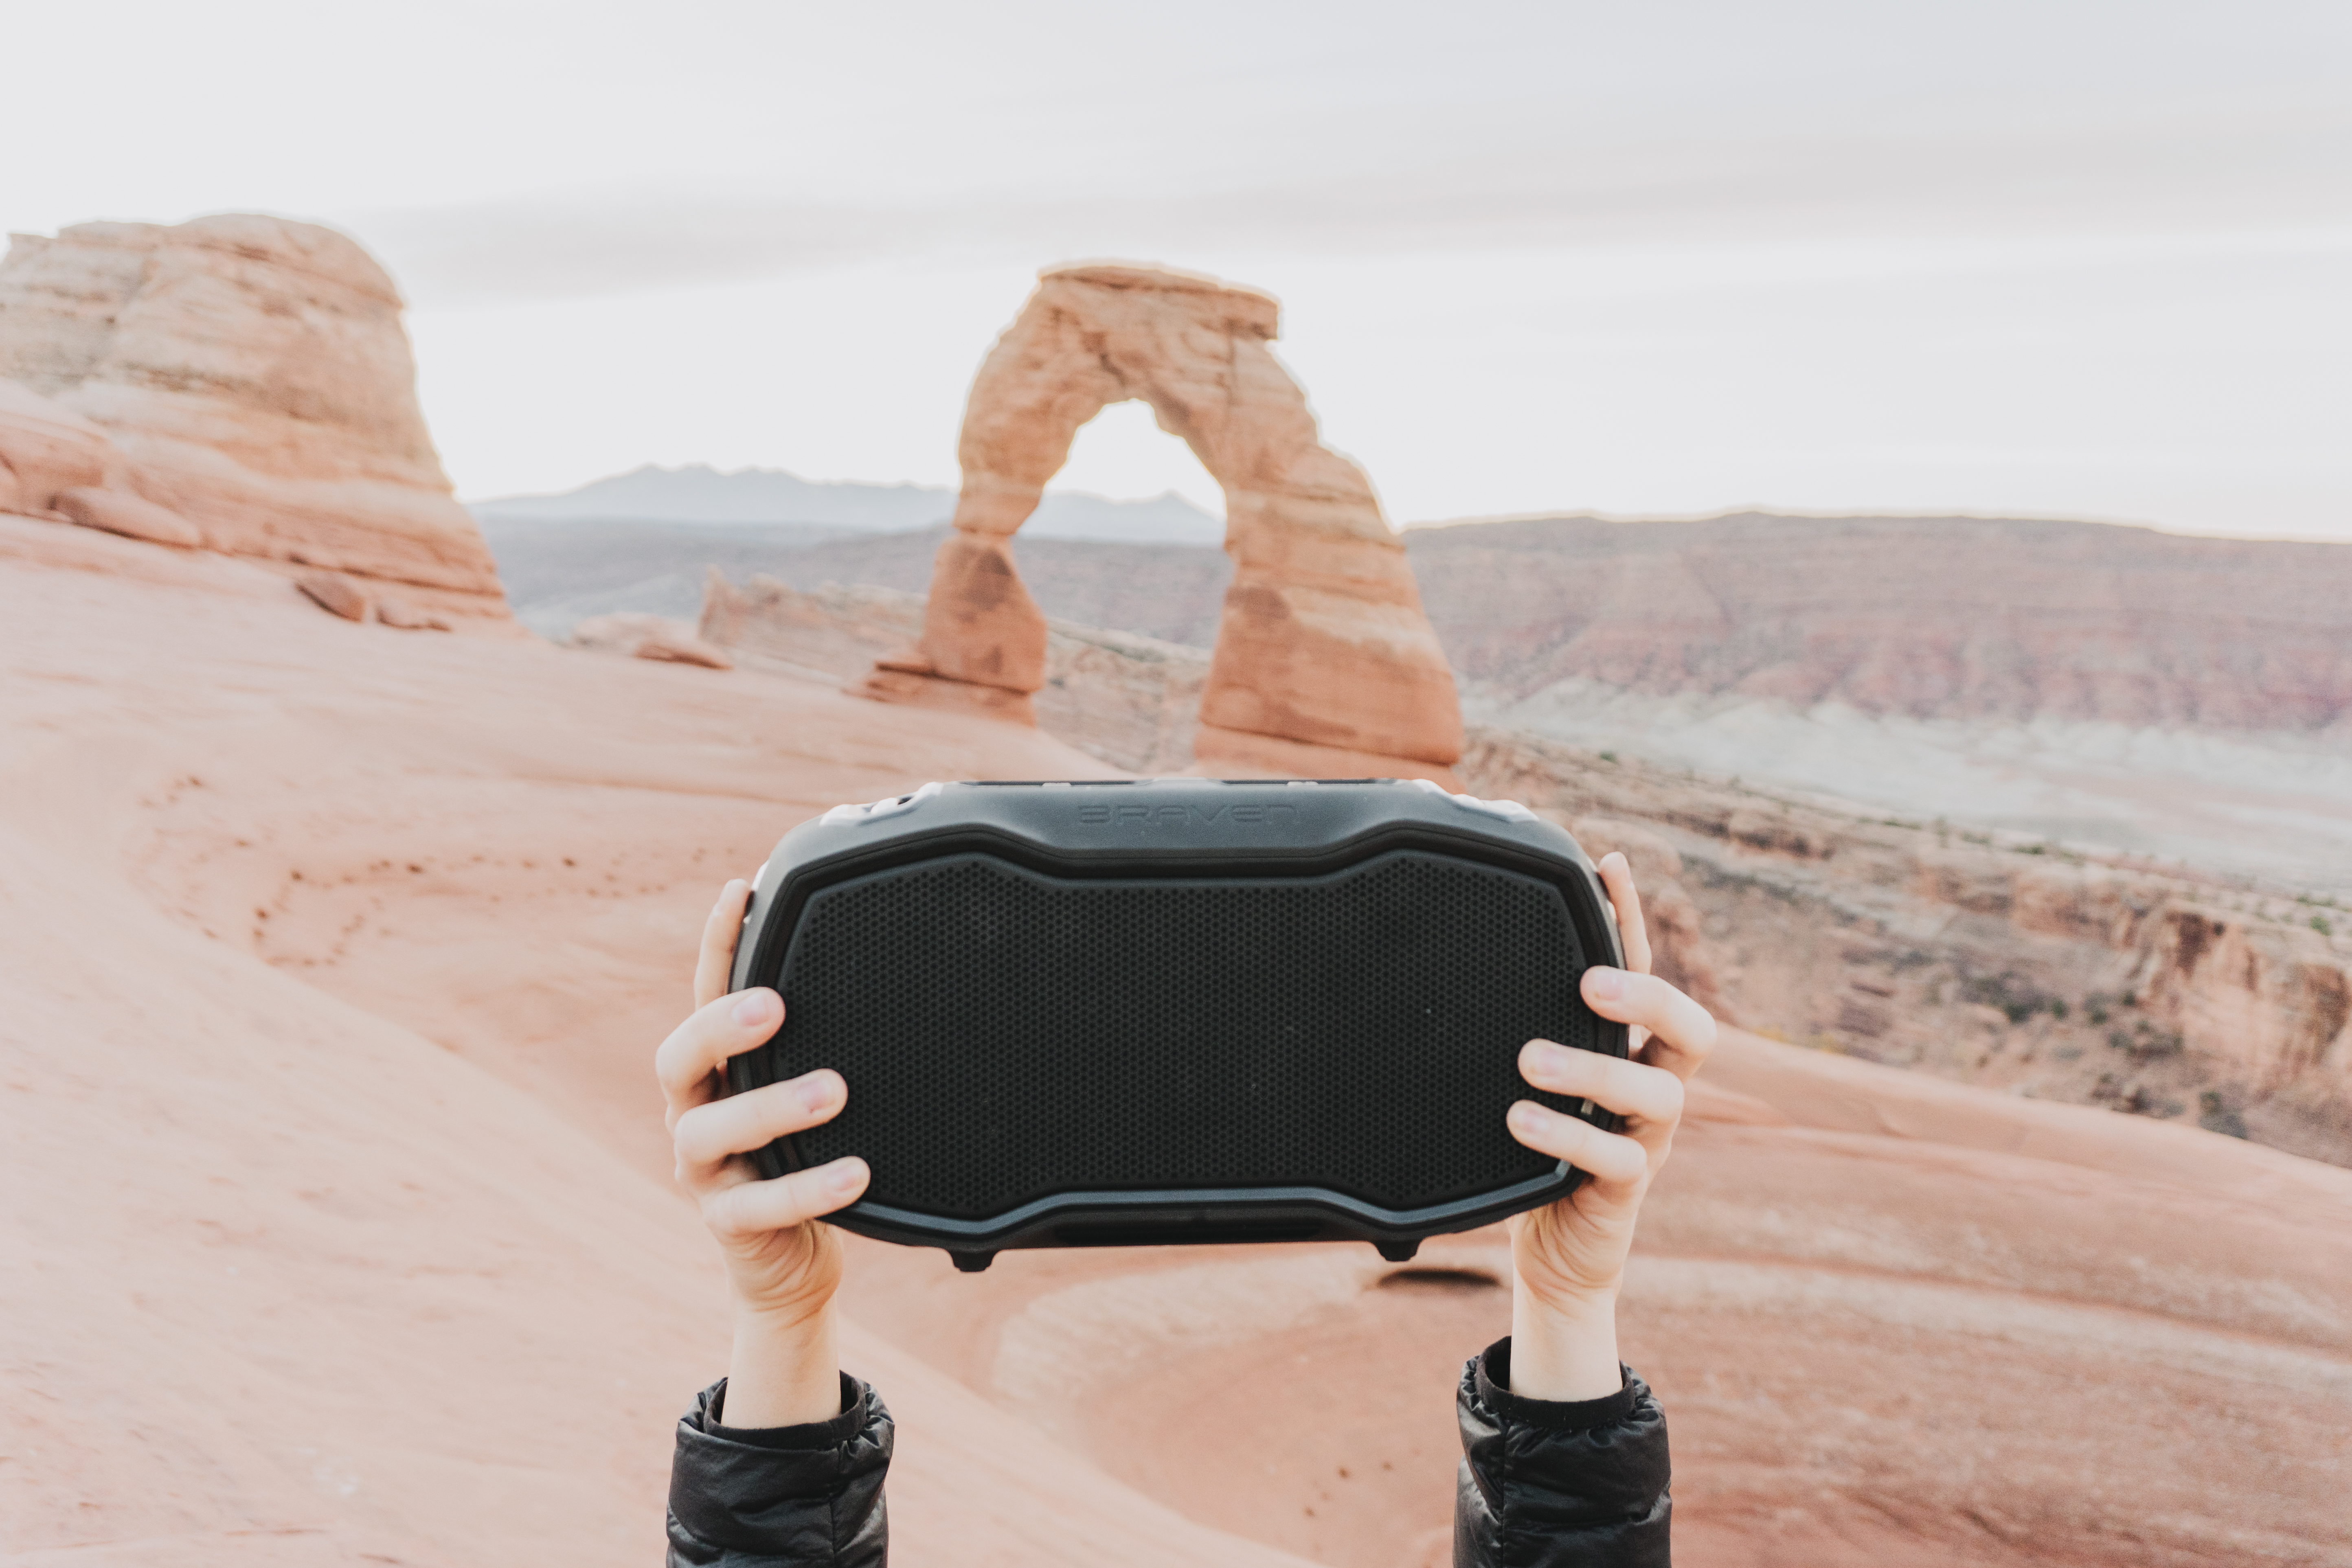 Utah's Zagg expands product line with Braven acquisition